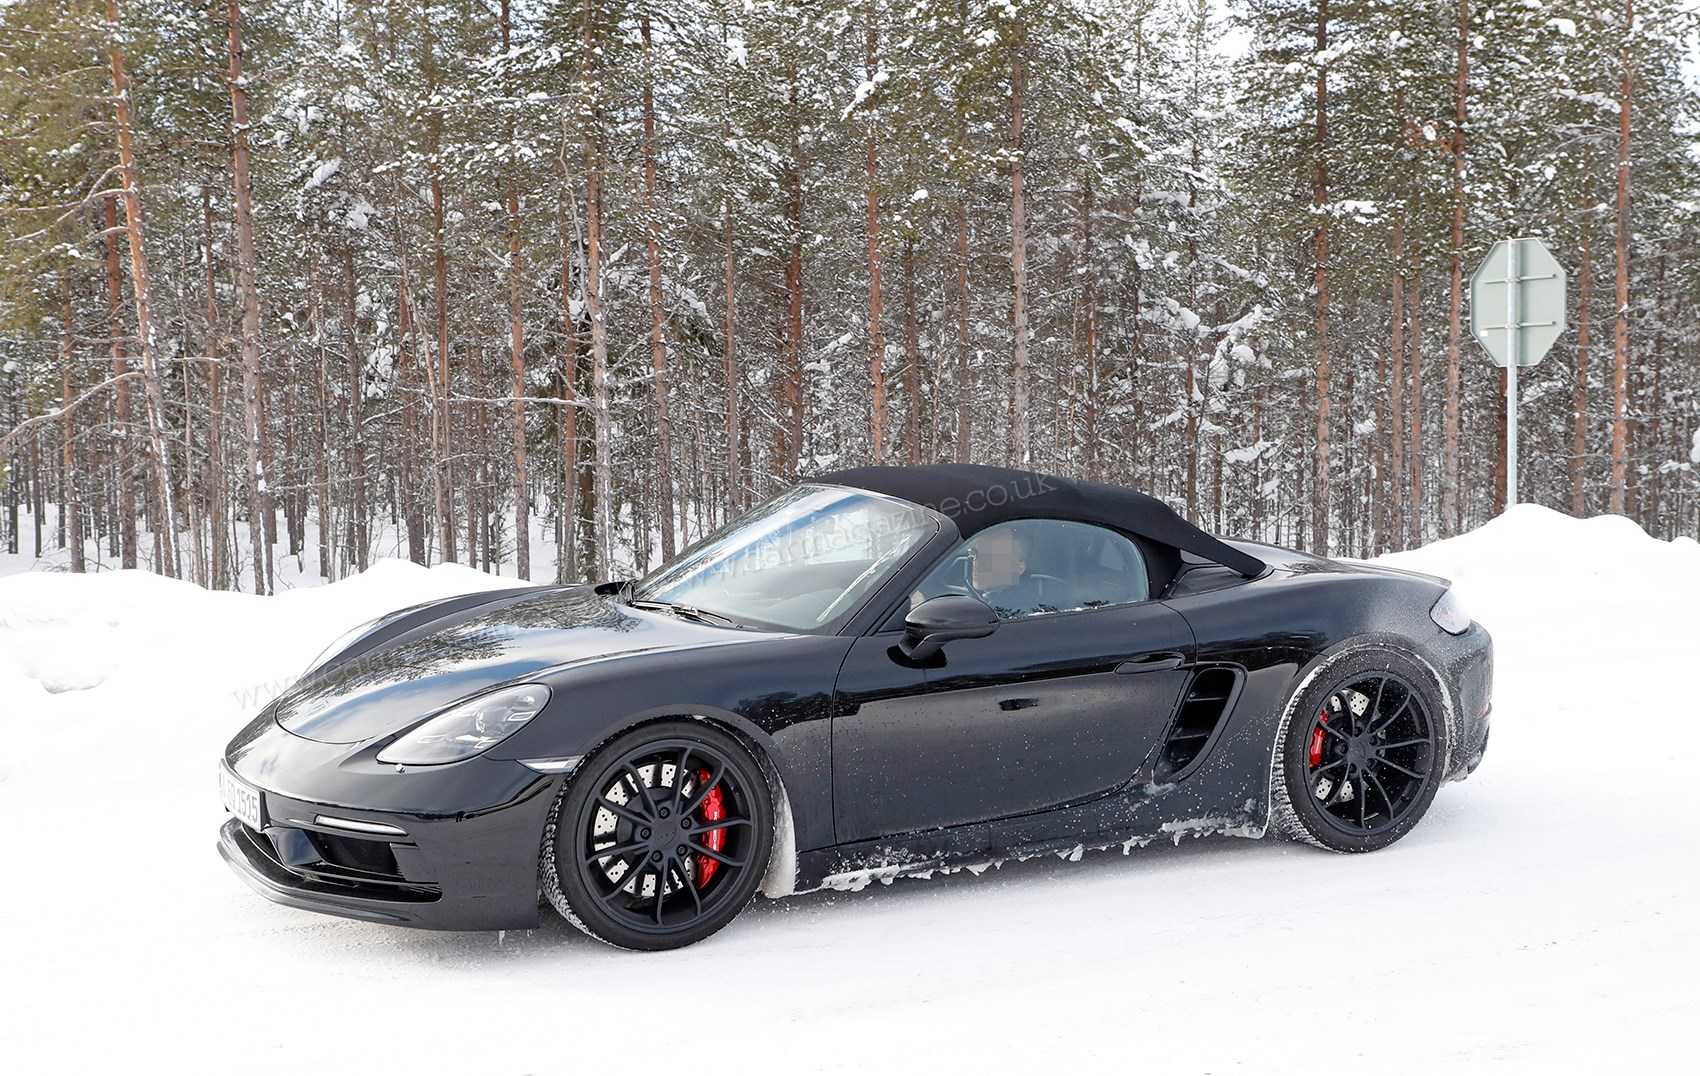 New 2018 Porsche 718 Boxster Spyder Spy Pictures News